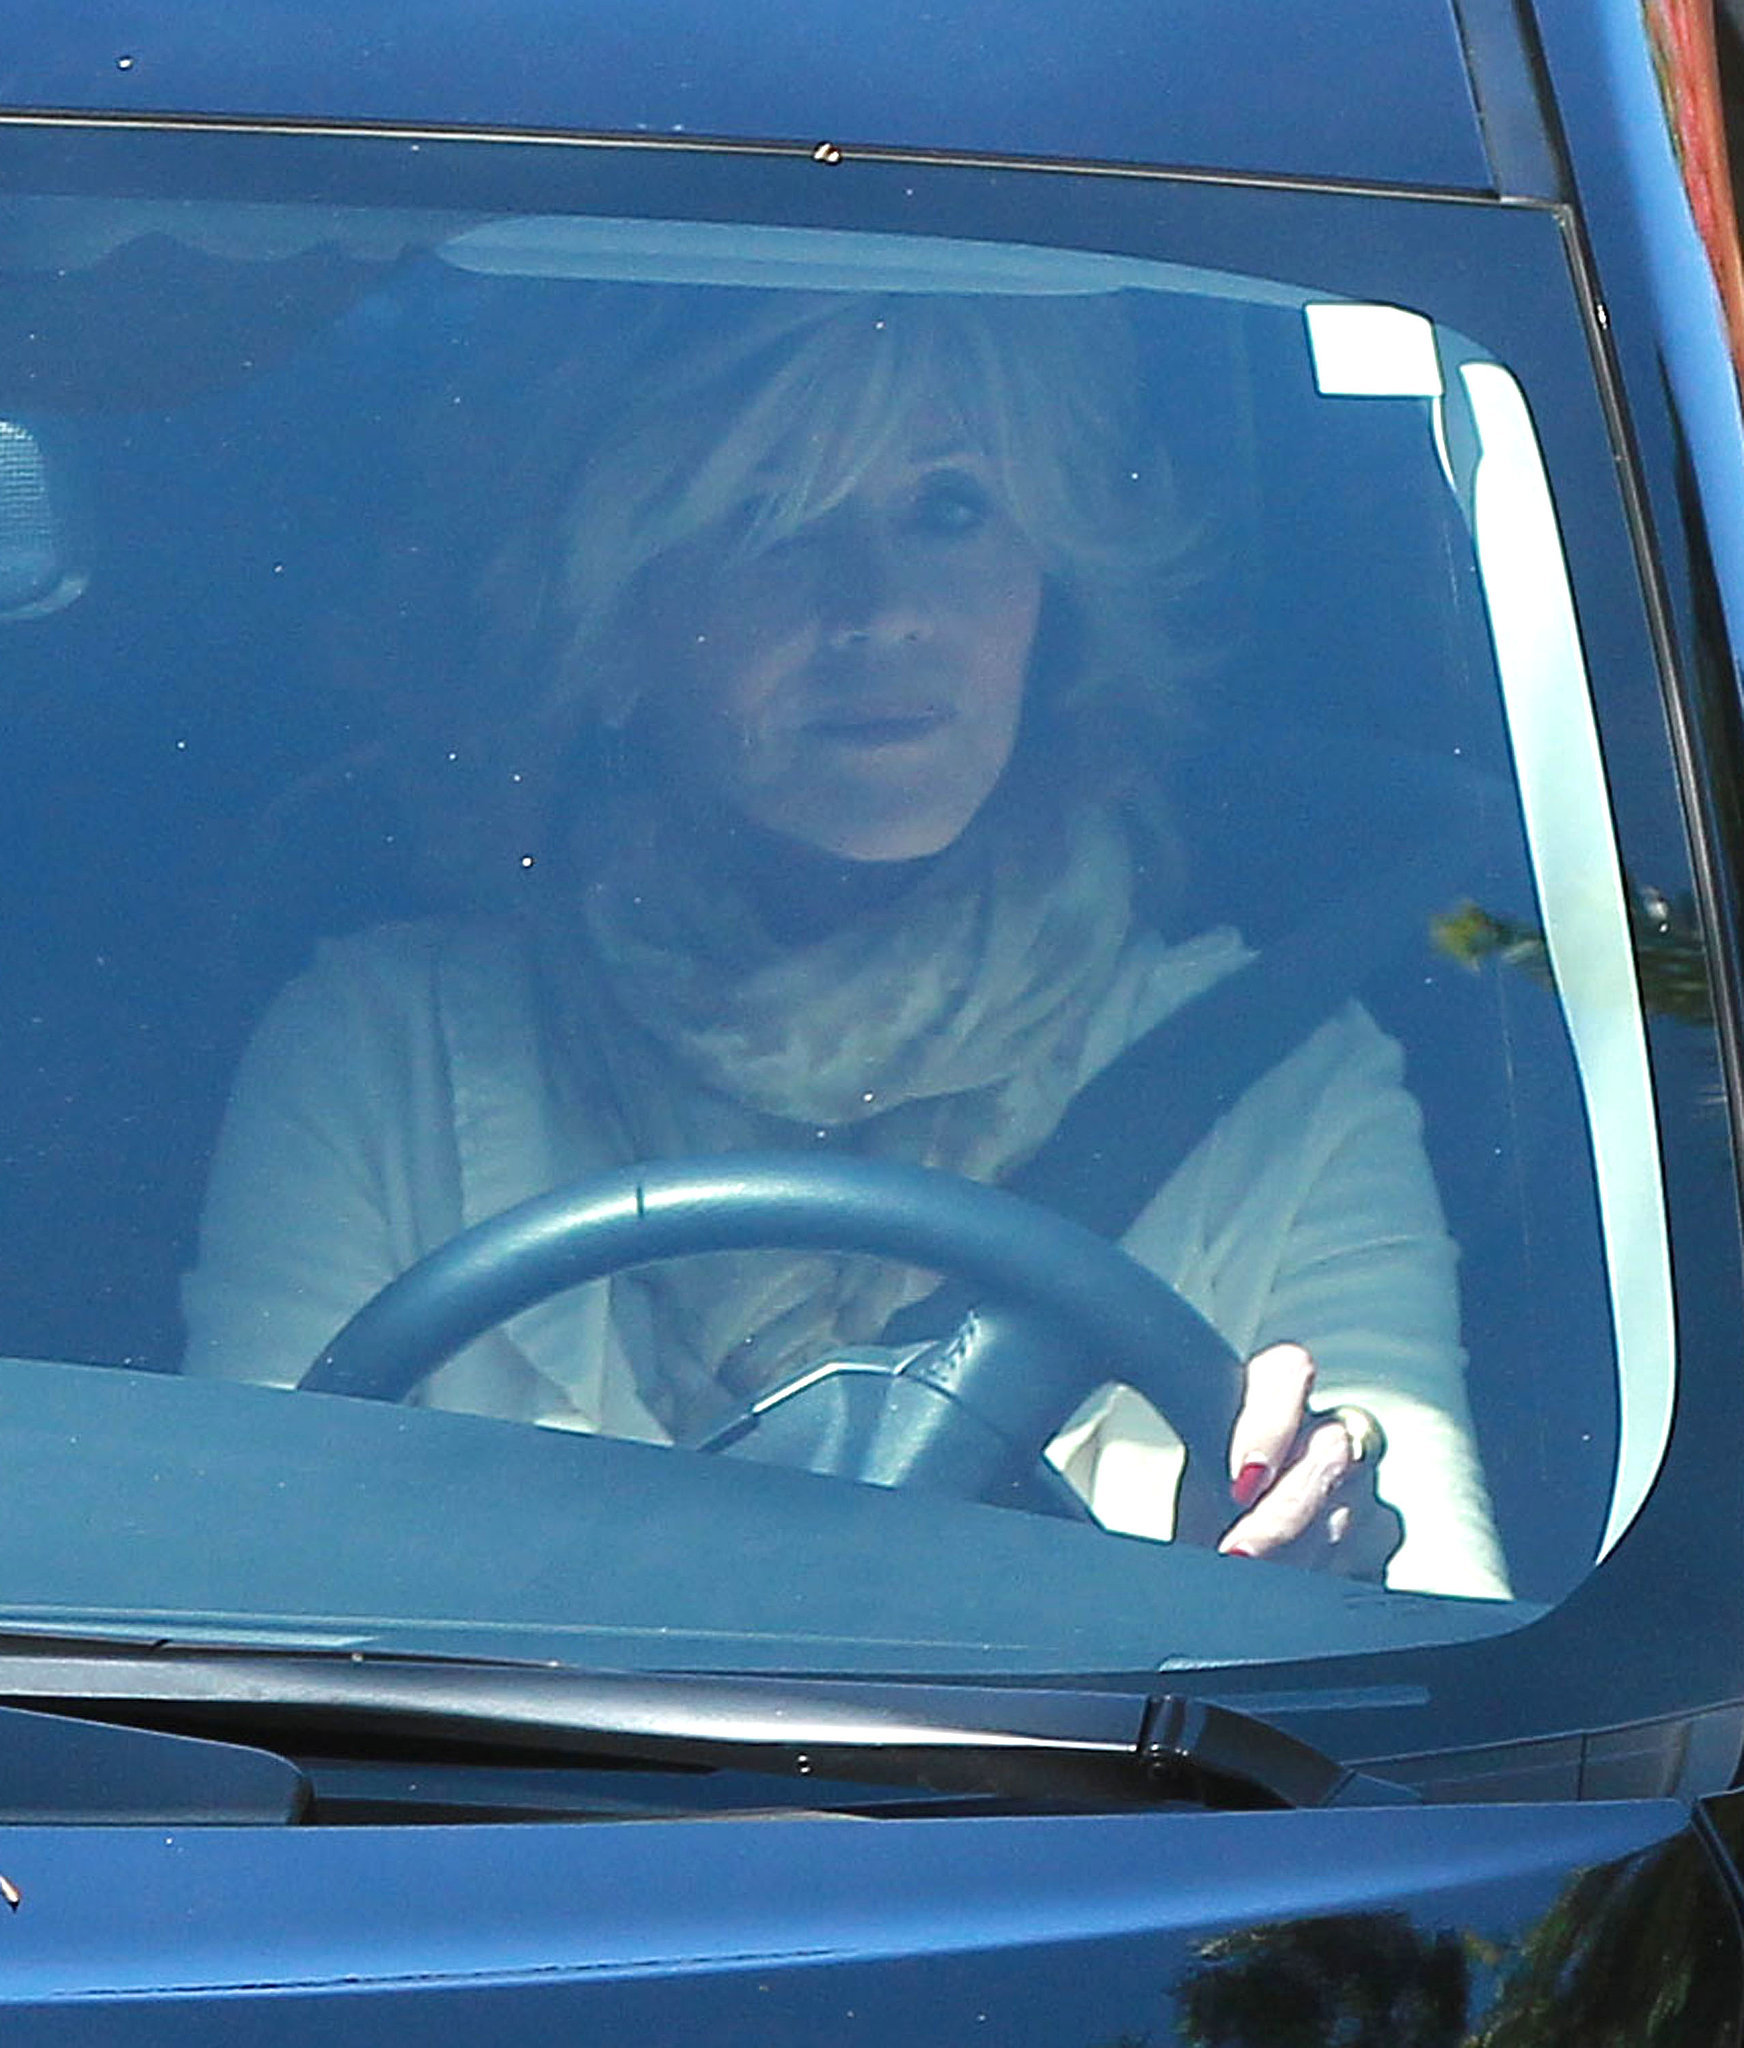 Jane Fonda arrived at the party in her car.